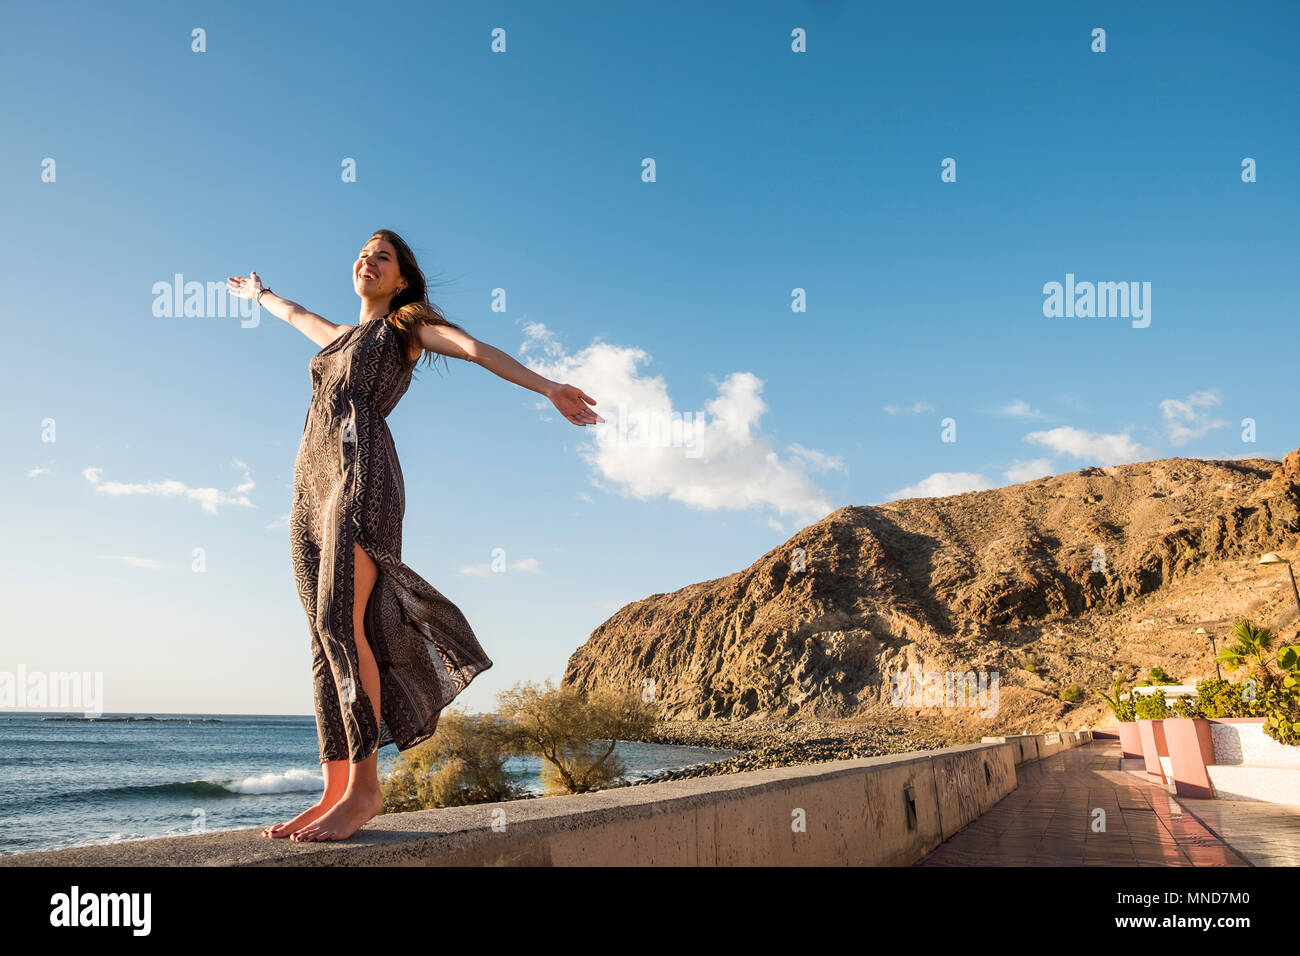 Young nice woman enjoy her freedom opening arms. Independent life and great feel with the world. Embrace all with satisfaction. Tenerife soul. - Stock Image